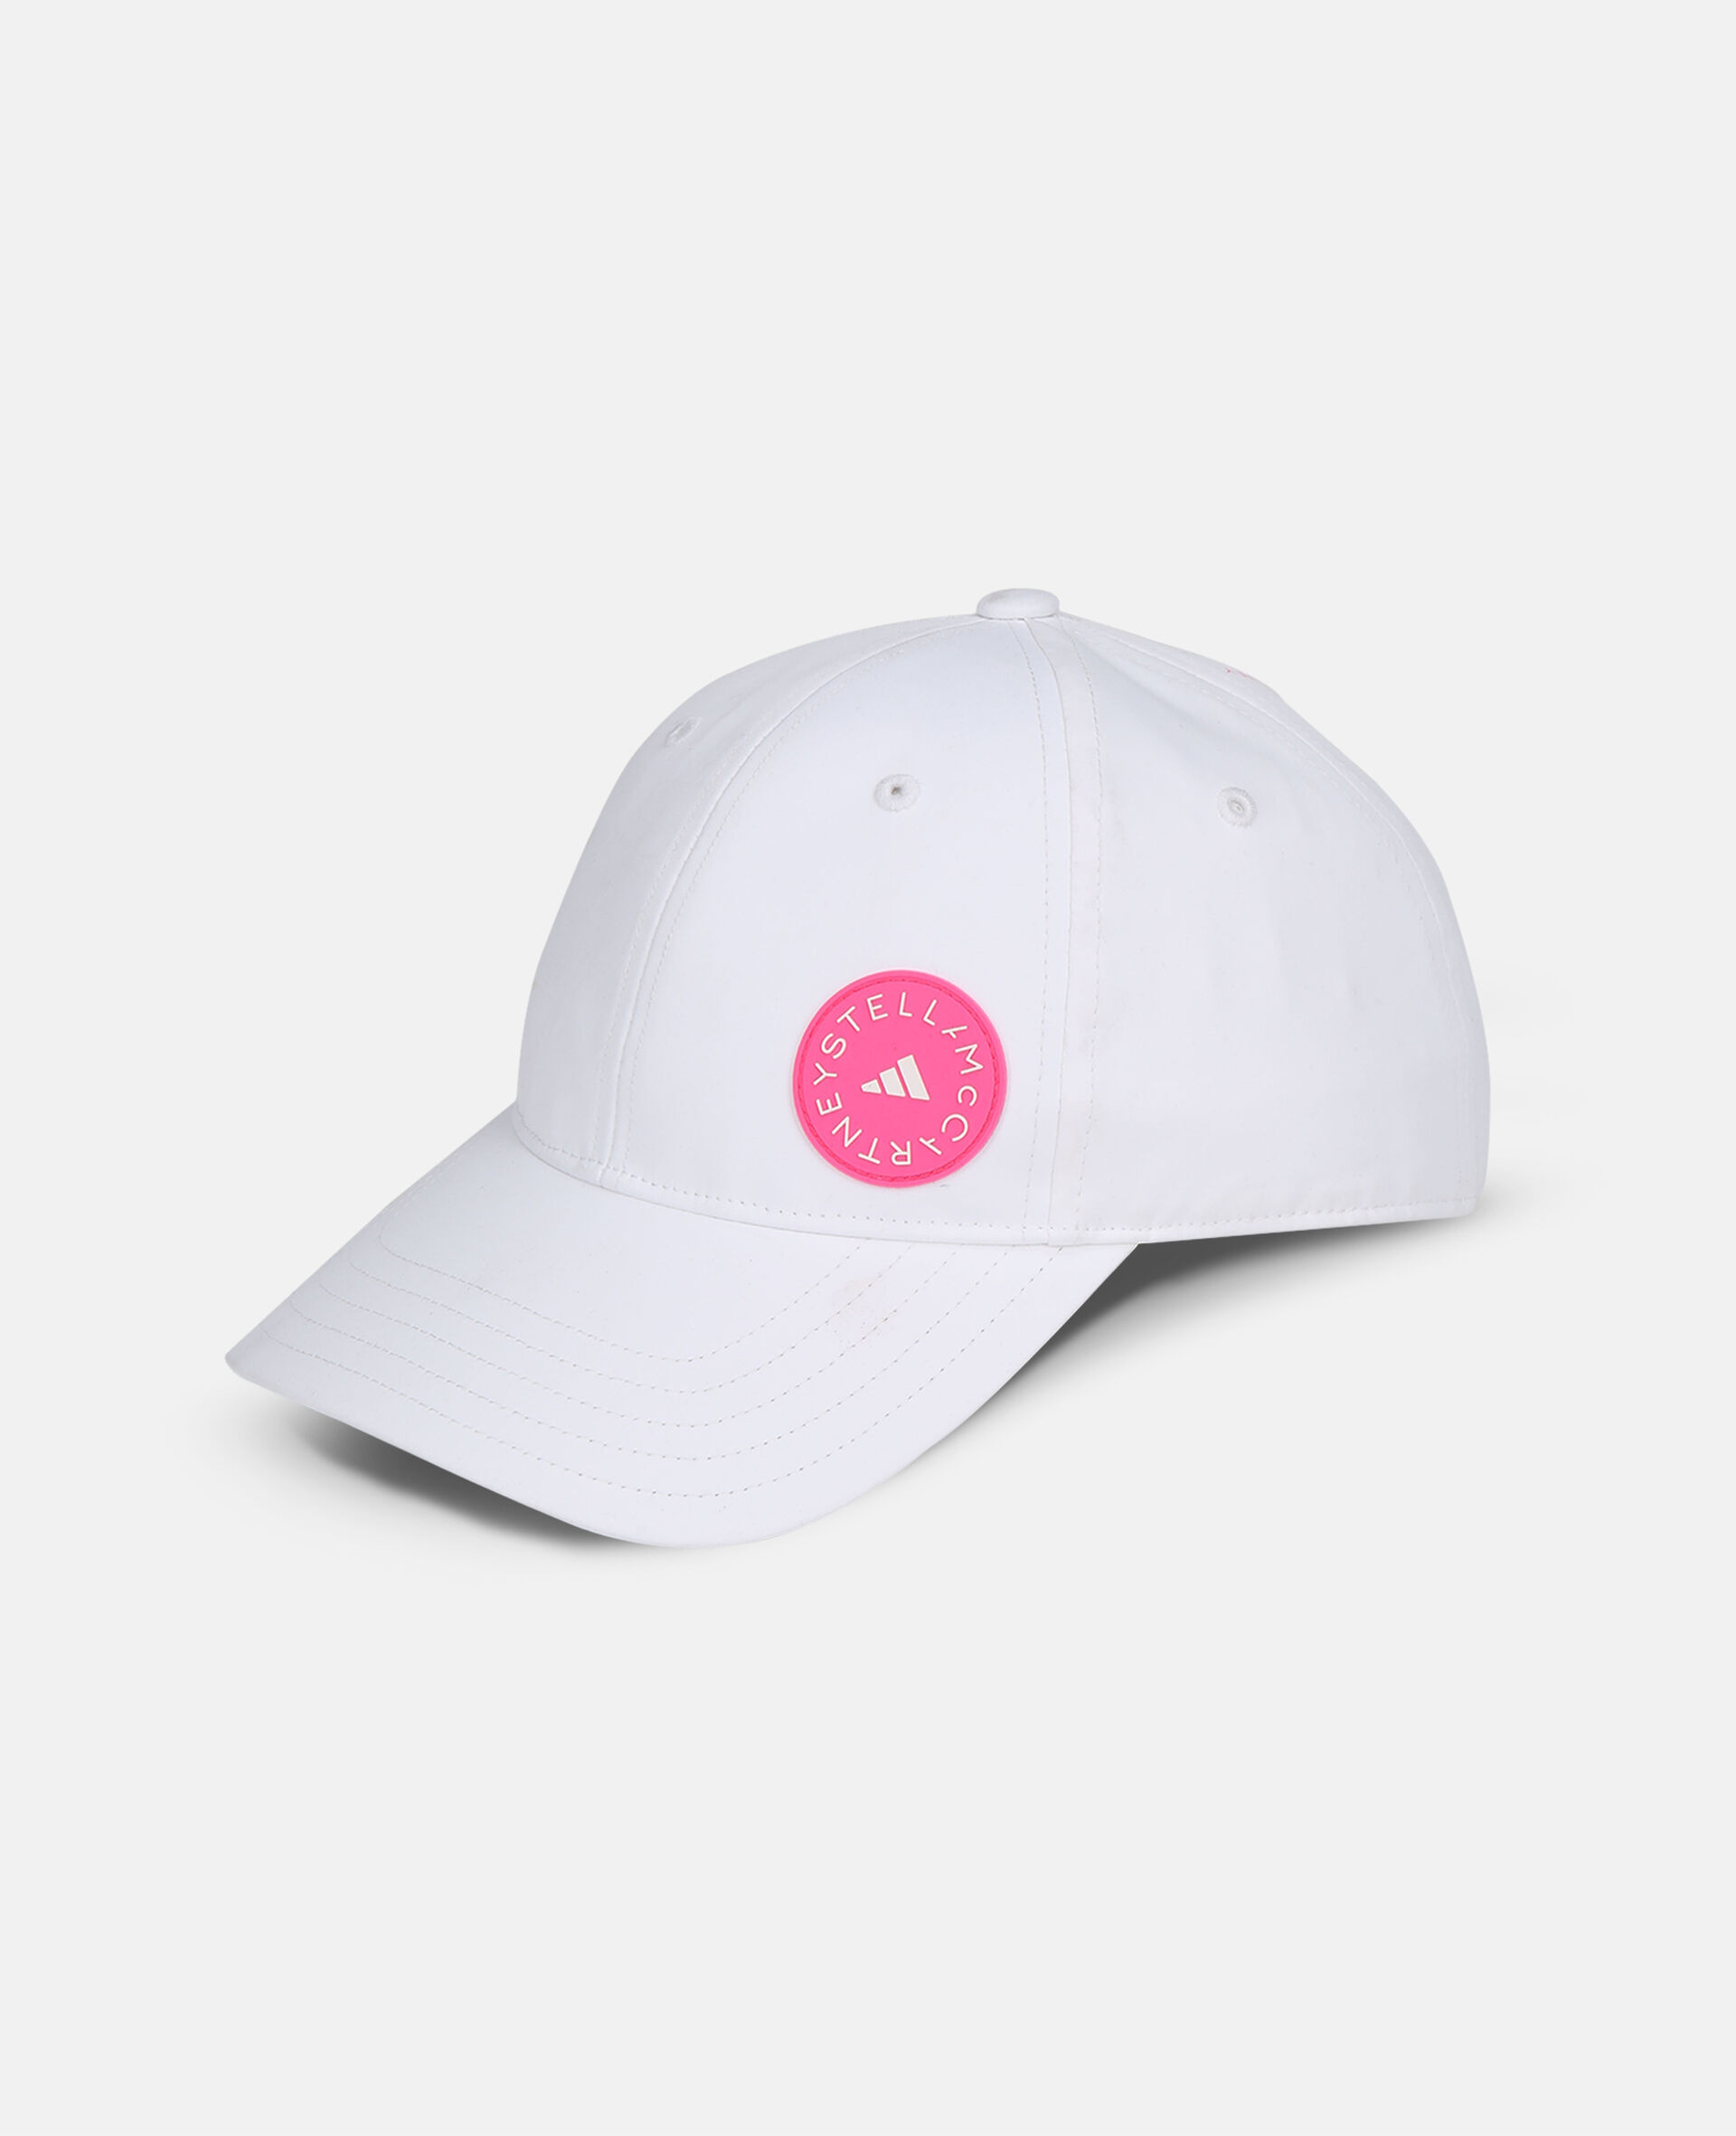 White Cap-White-large image number 0